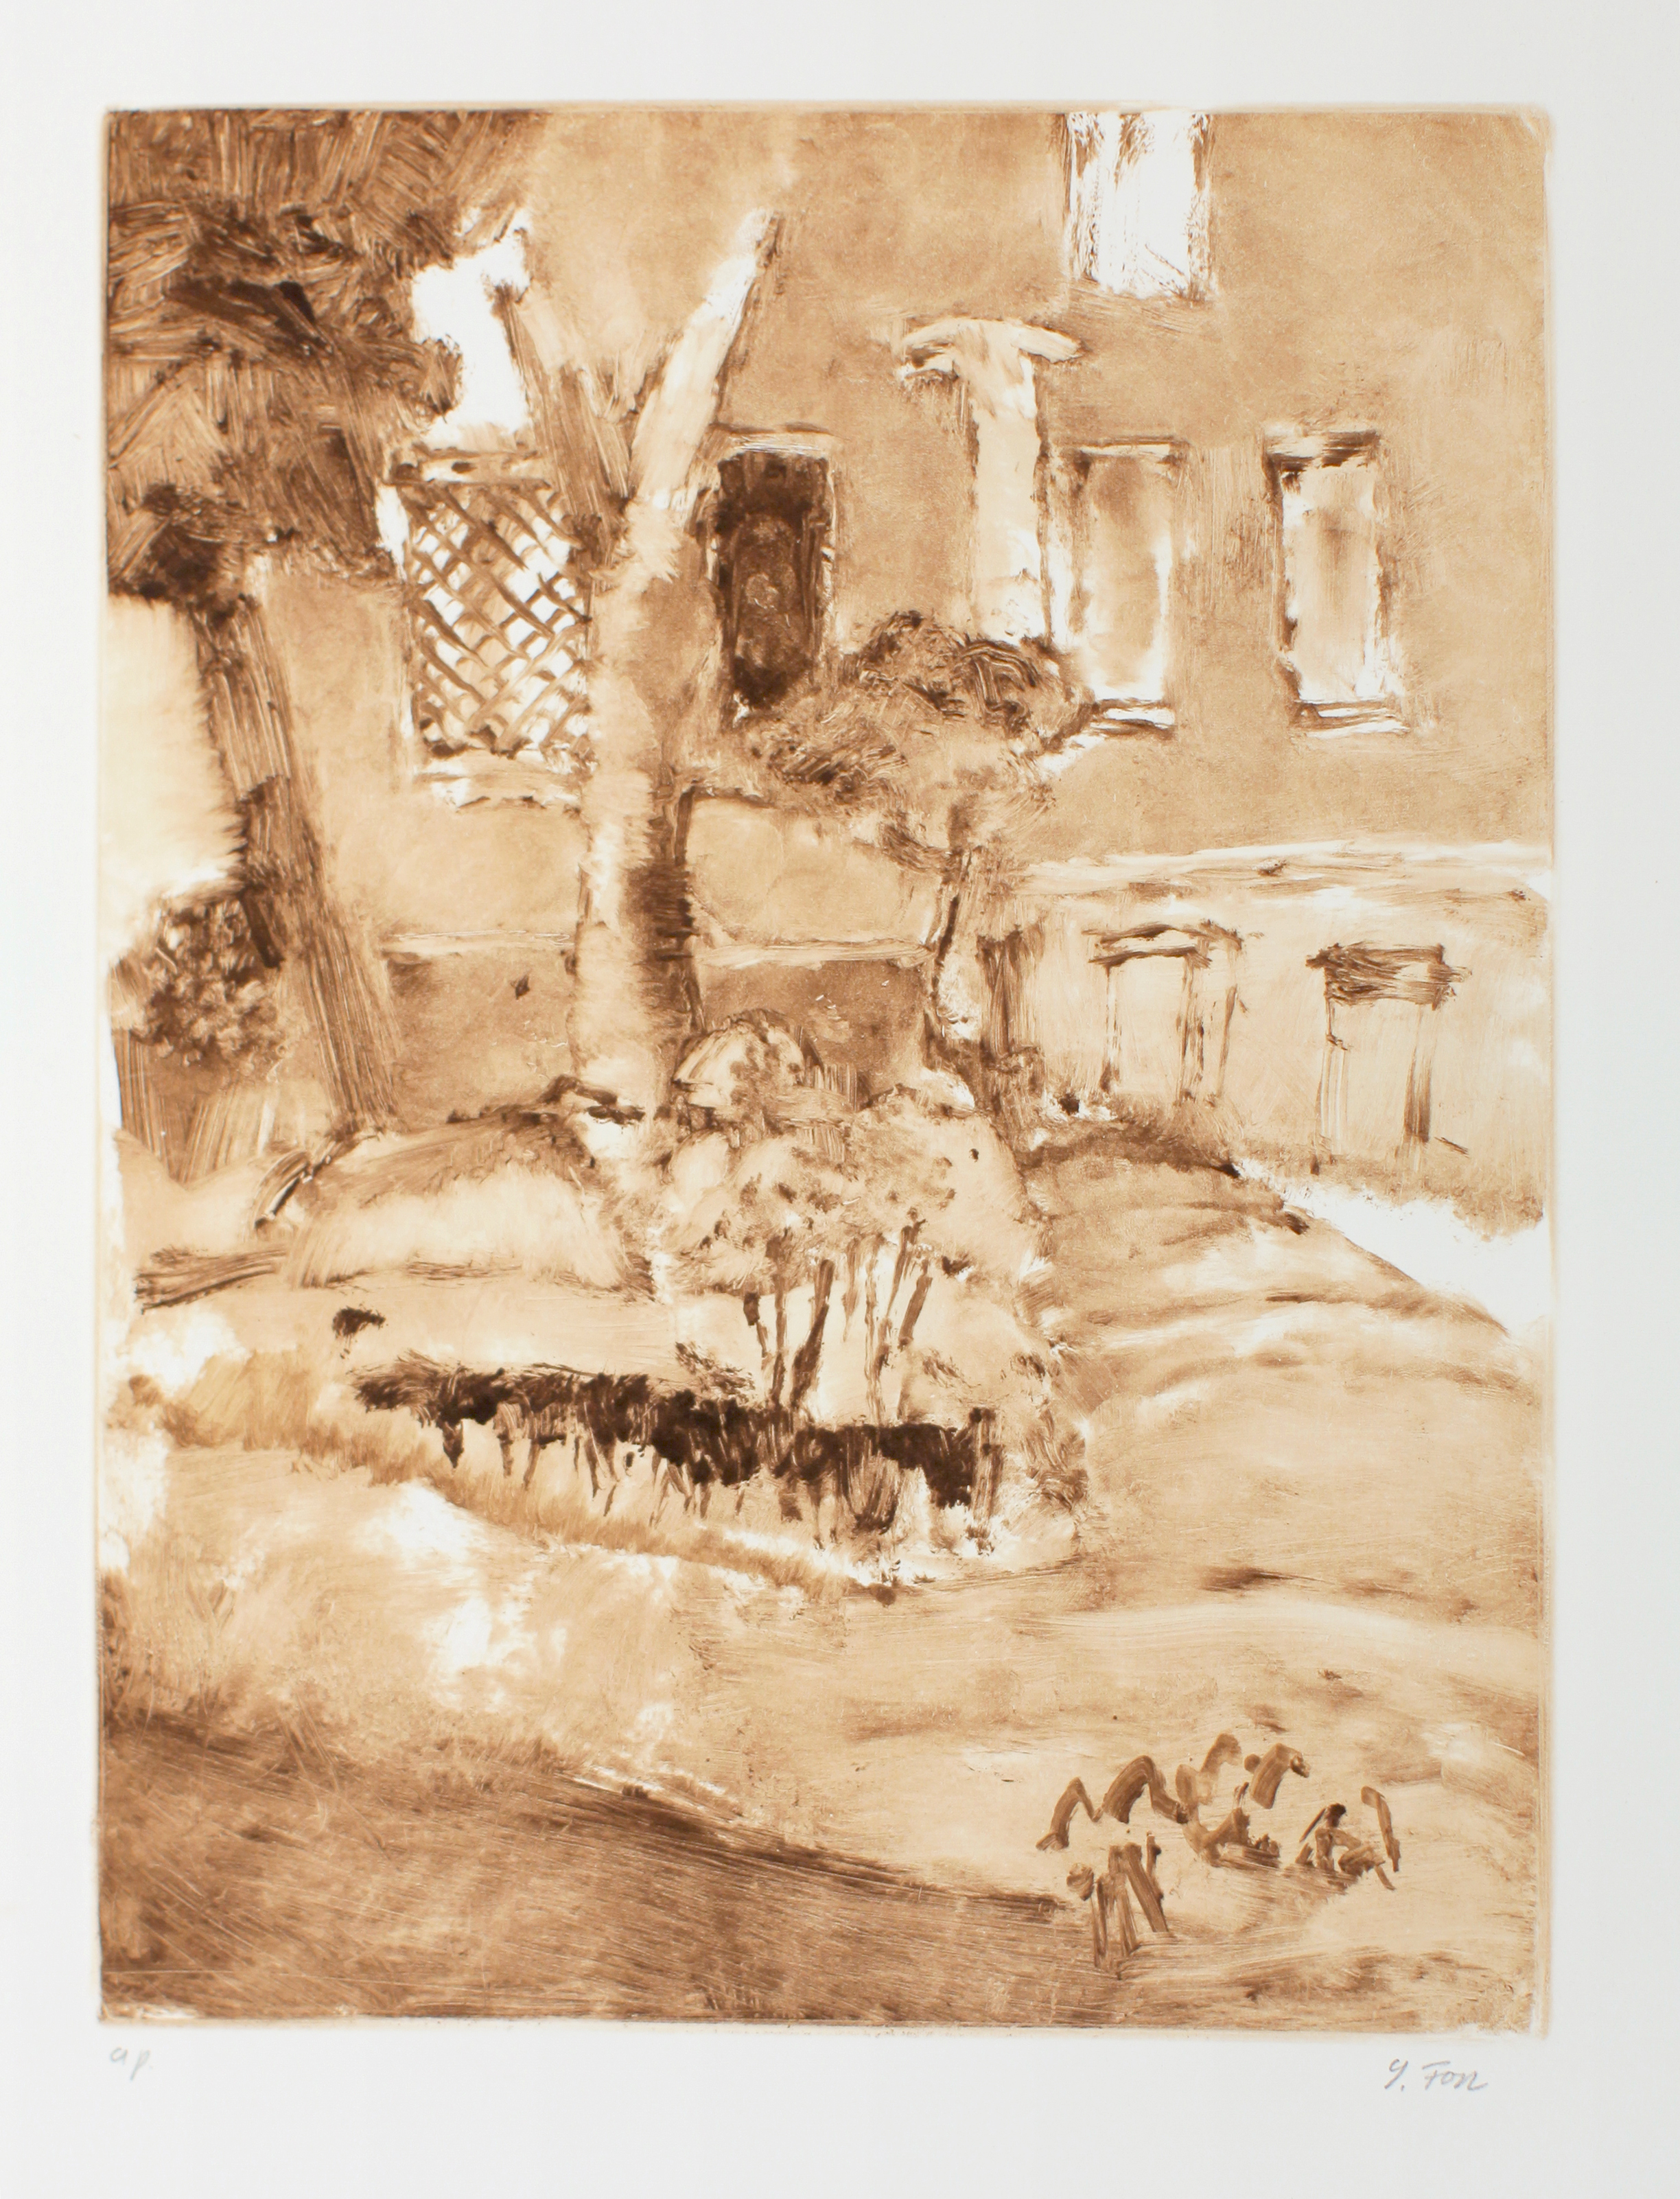 1990s_Venice_Garden_monotype_on_paper_22x15in_image_12x9in_ap_WPF441.jpg